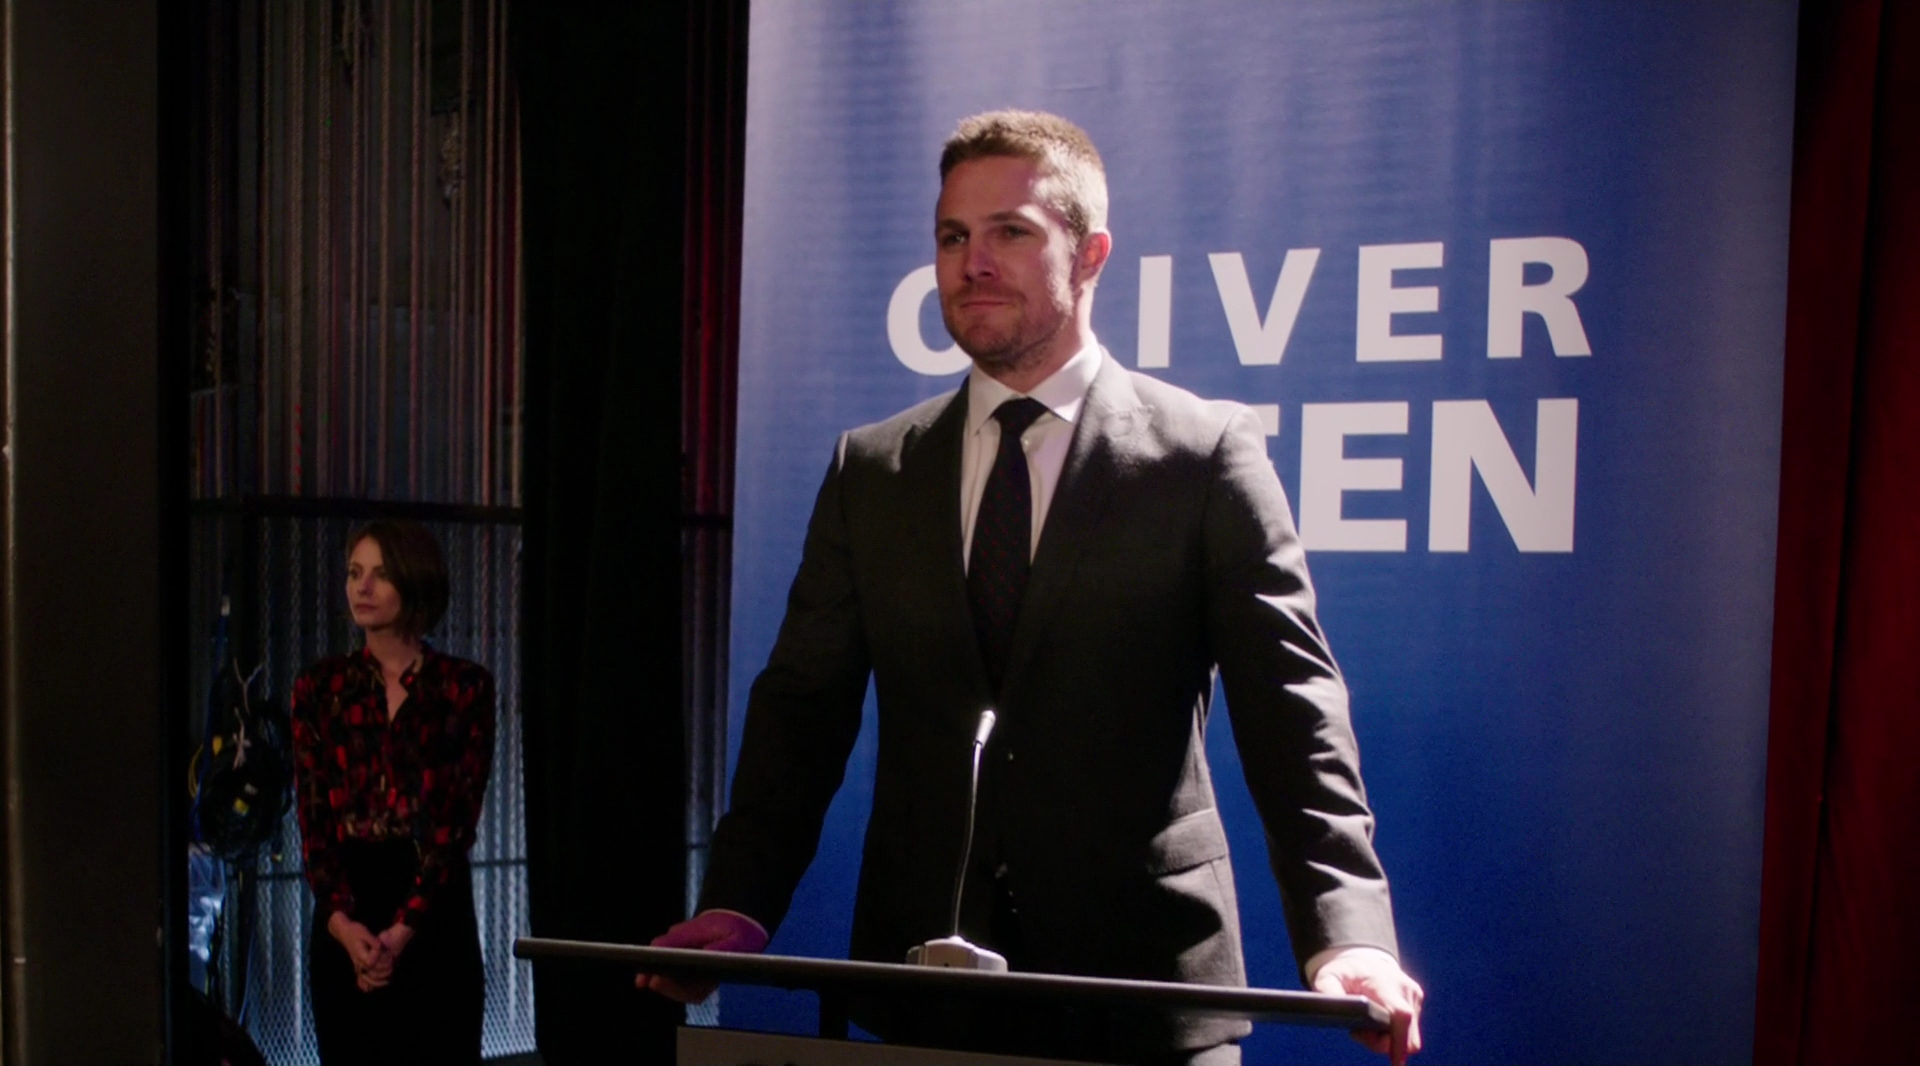 Arrow, Season 4, Episode 14